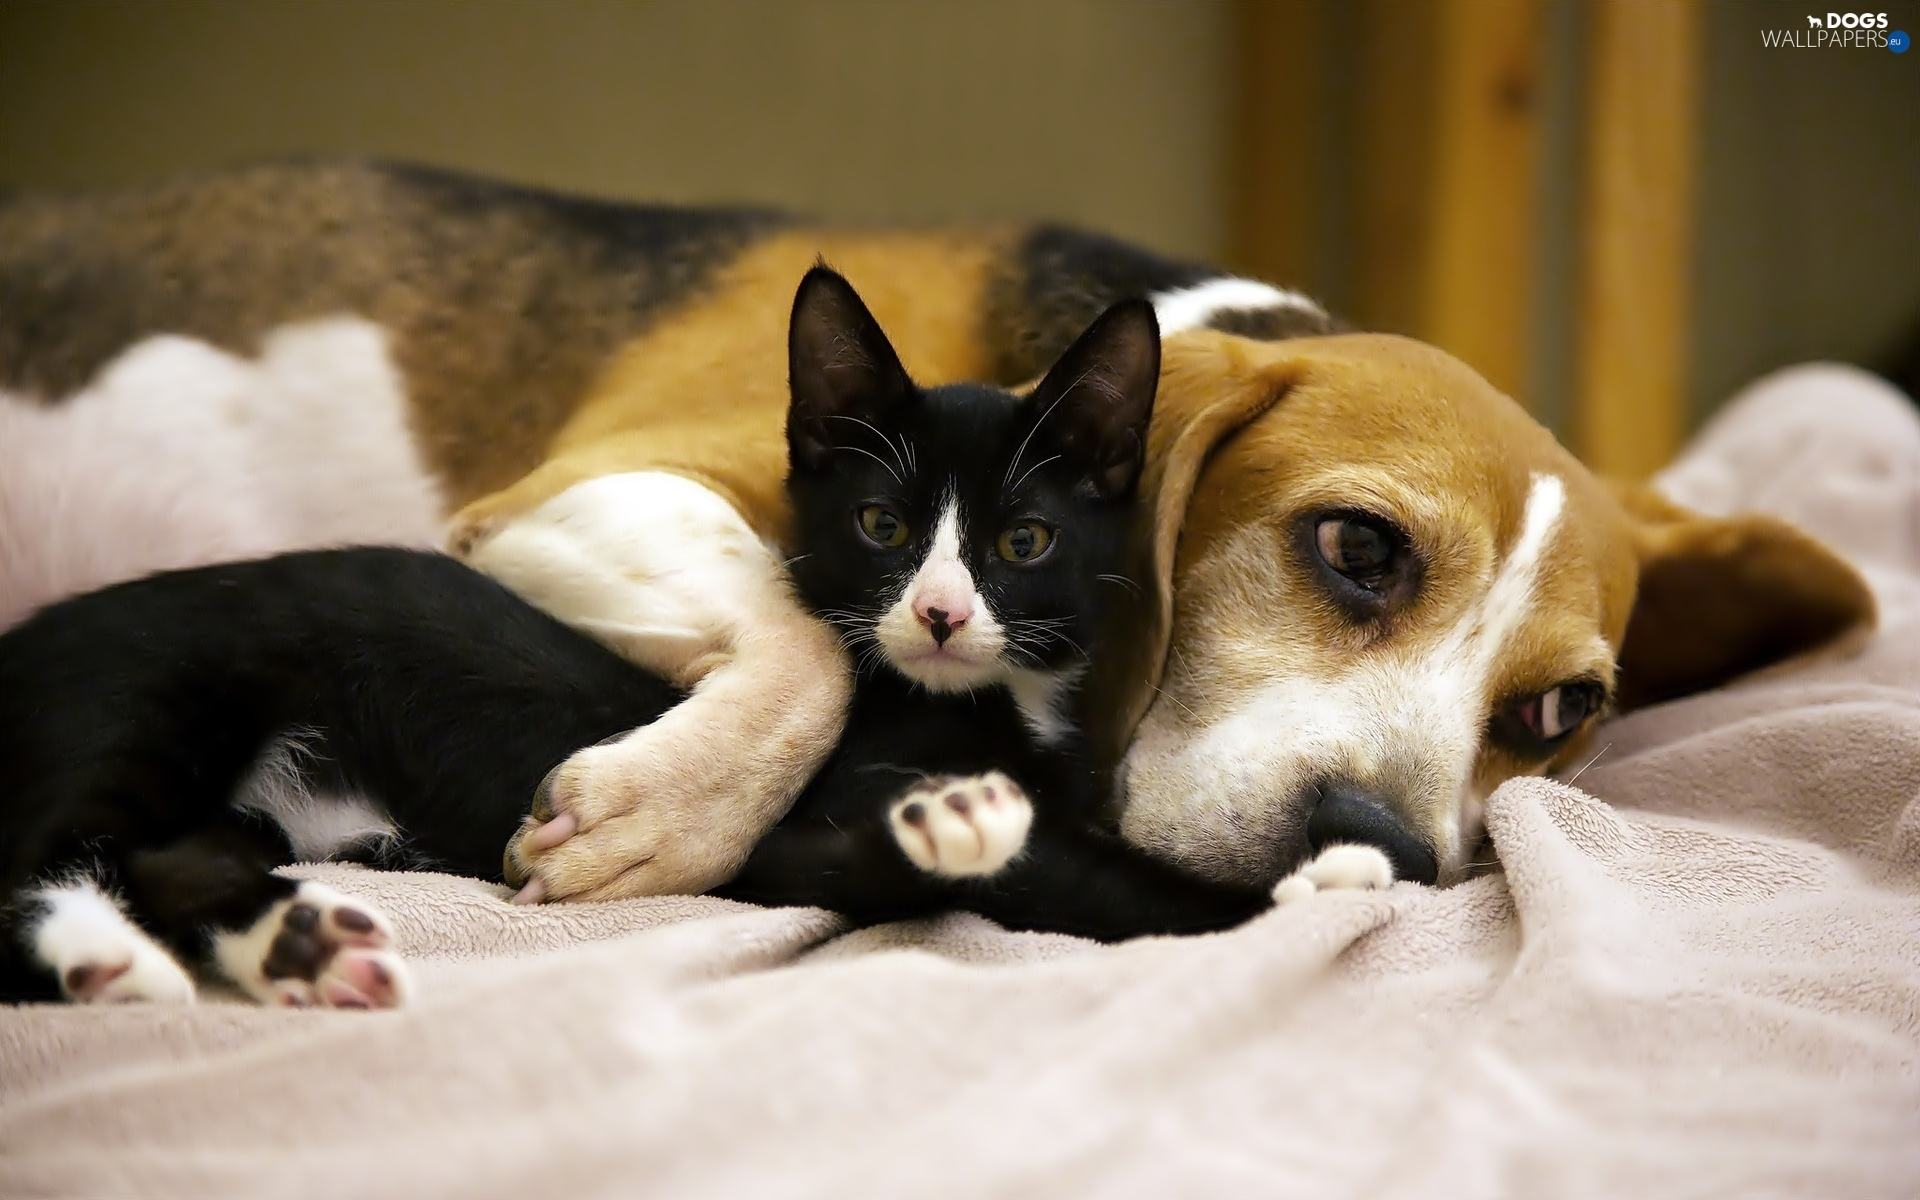 Small Cute Puppy Wallpapers Friends Dog Black Beagle Kitten Dogs Wallpapers